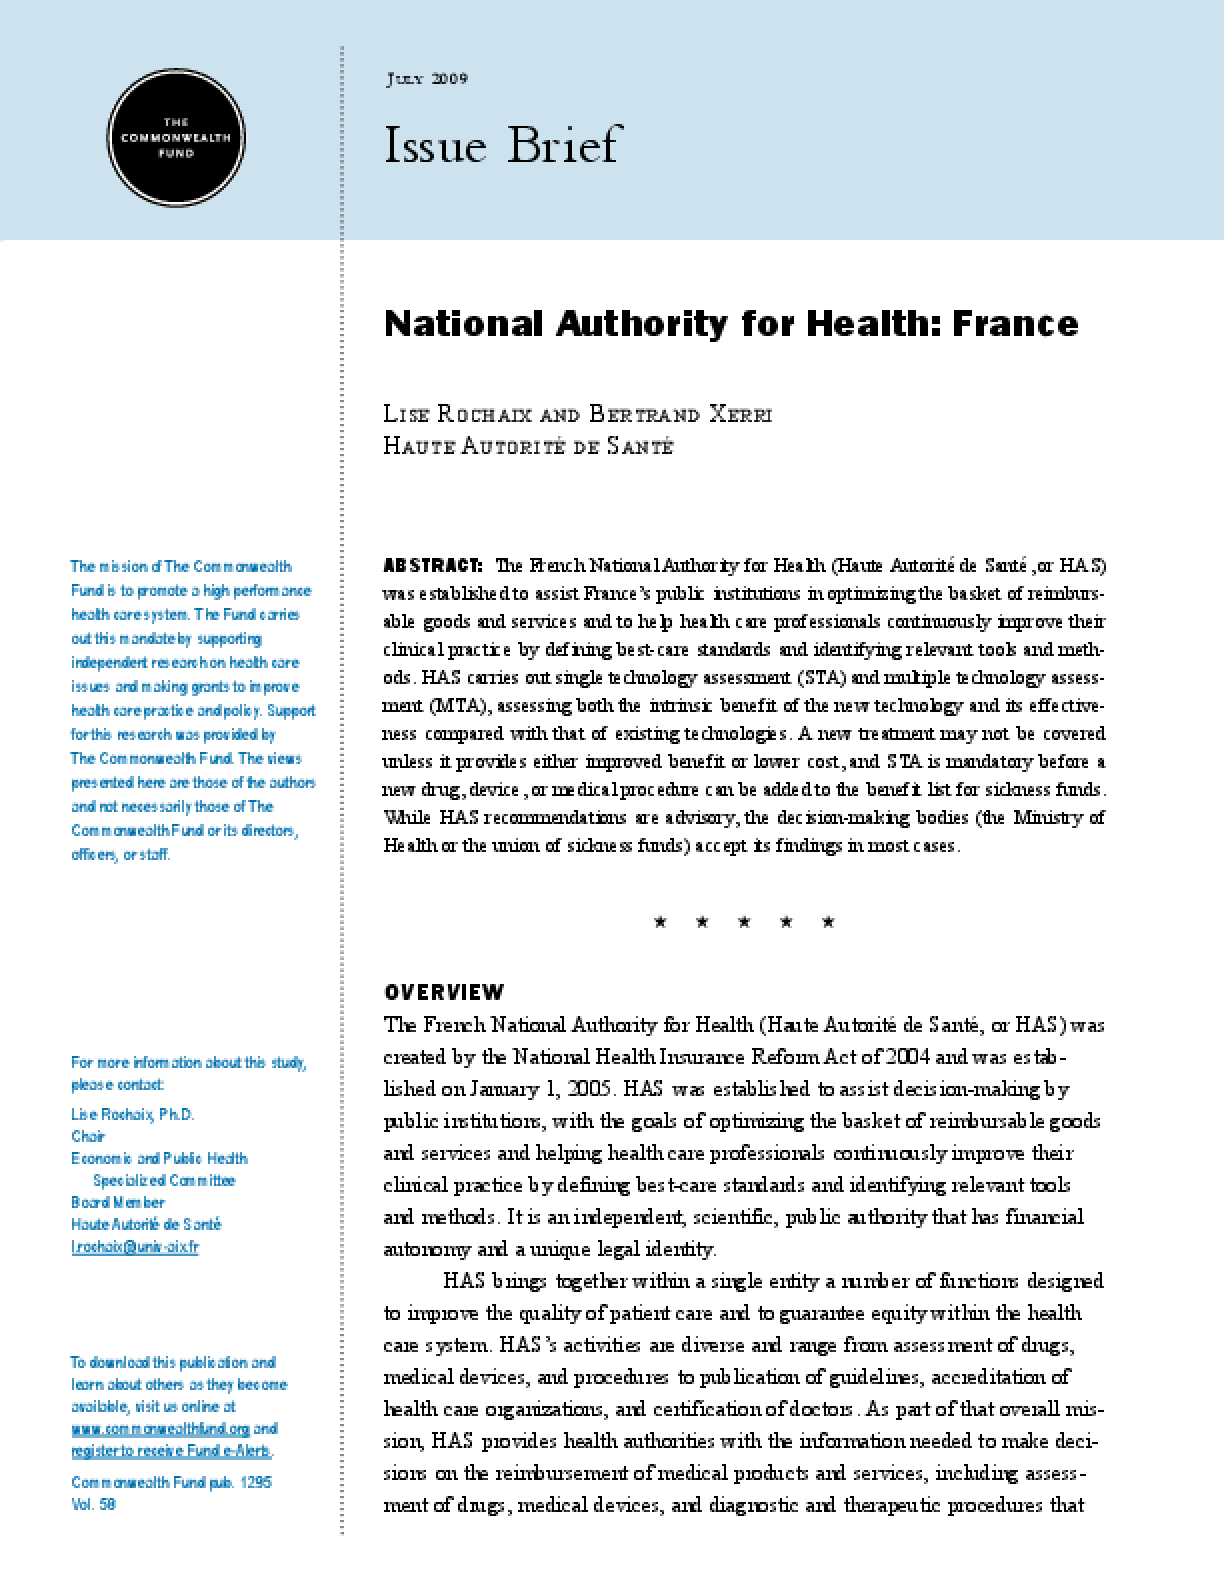 National Authority for Health: France